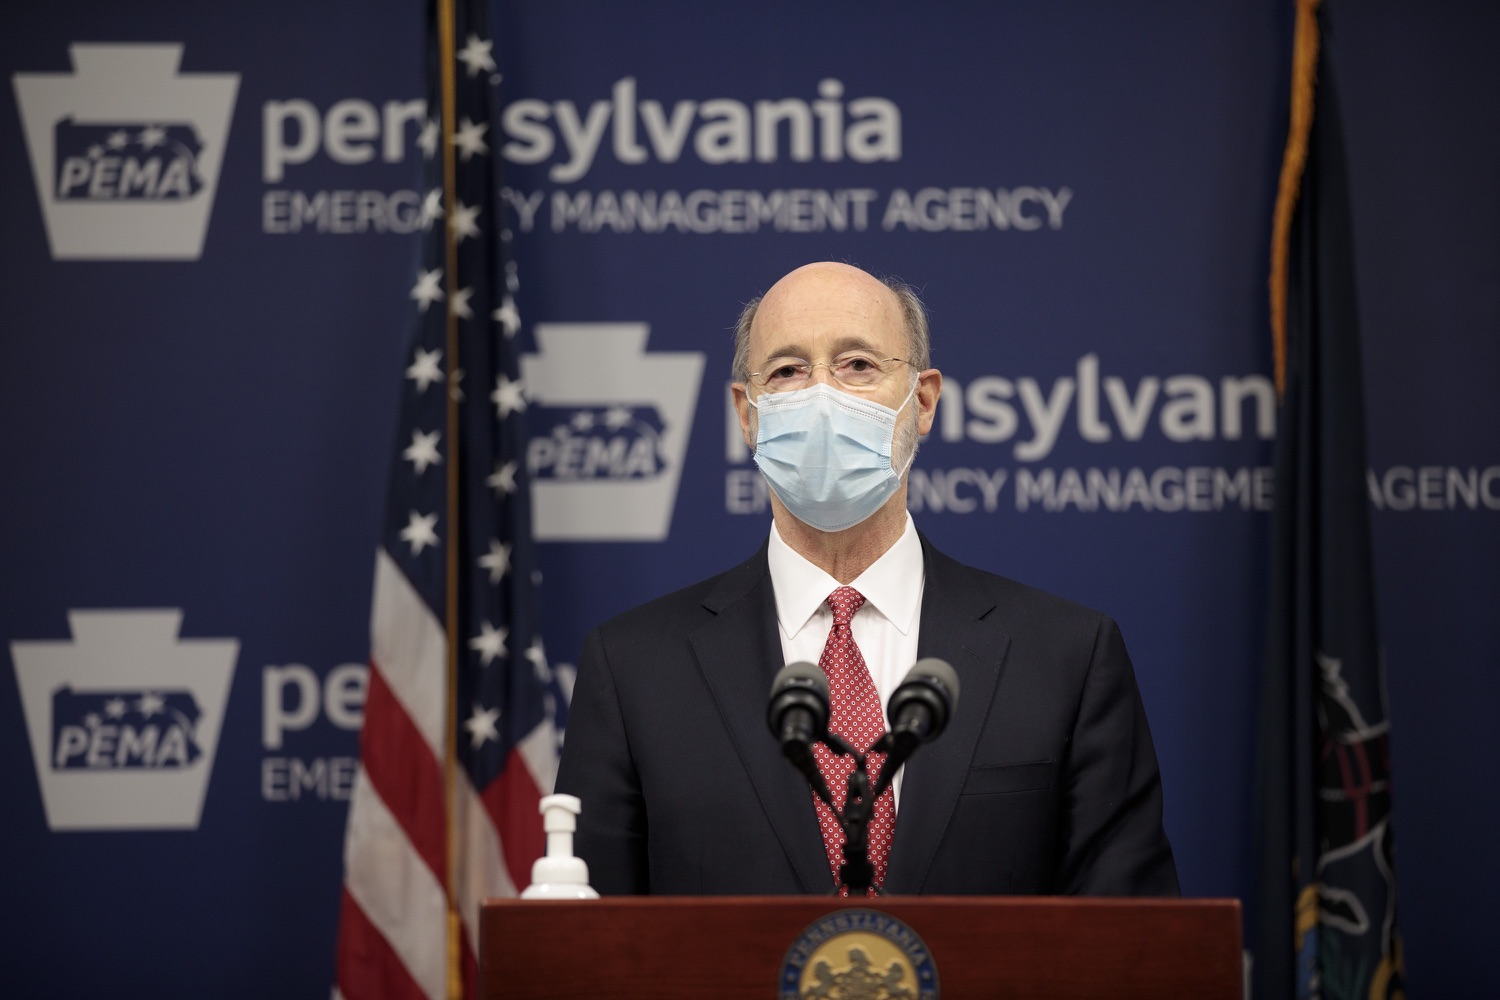 """<a href=""""https://filesource.wostreaming.net/commonwealthofpa/photo/18465_gov_electoralCollege_dz_06.jpg"""" target=""""_blank"""">⇣Download Photo<br></a>Pennsylvania Governor Tom Wolf speaking at the press conference.  With Congress preparing to count Electoral College votes today, Governor Tom Wolf was joined by Secretary of State Kathy Boockvar and Philadelphia City Commissioner Al Schmidt to emphasize that Pennsylvania had a free, fair and secure election. All efforts by Congressional Republicans to overthrow the election results and subvert the will of the voters are disgraceful and must be rejected. Harrisburg, PA  January 6, 2021"""